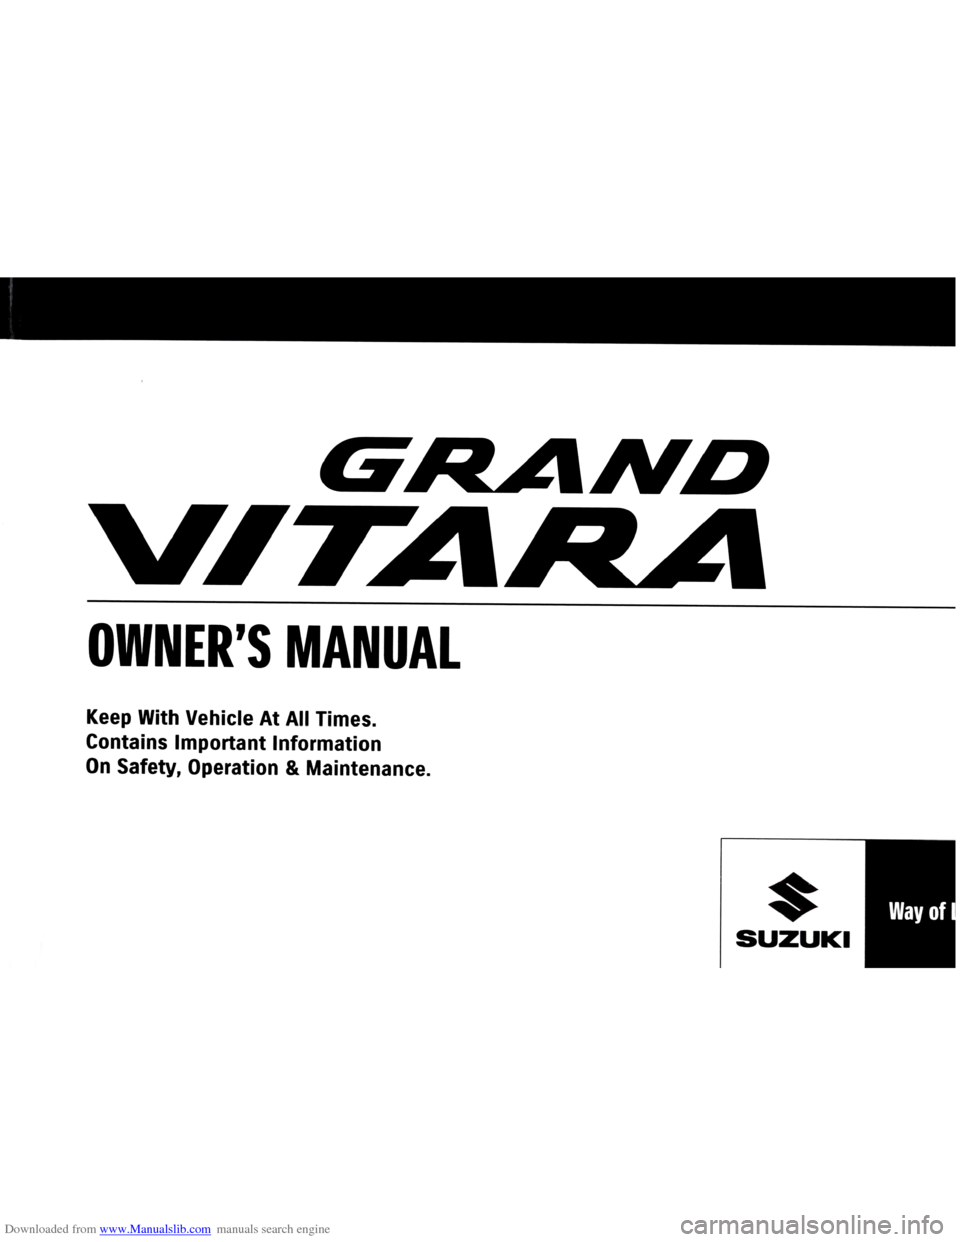 SUZUKI GRAND VITARA 2005 3.G Owners Manual